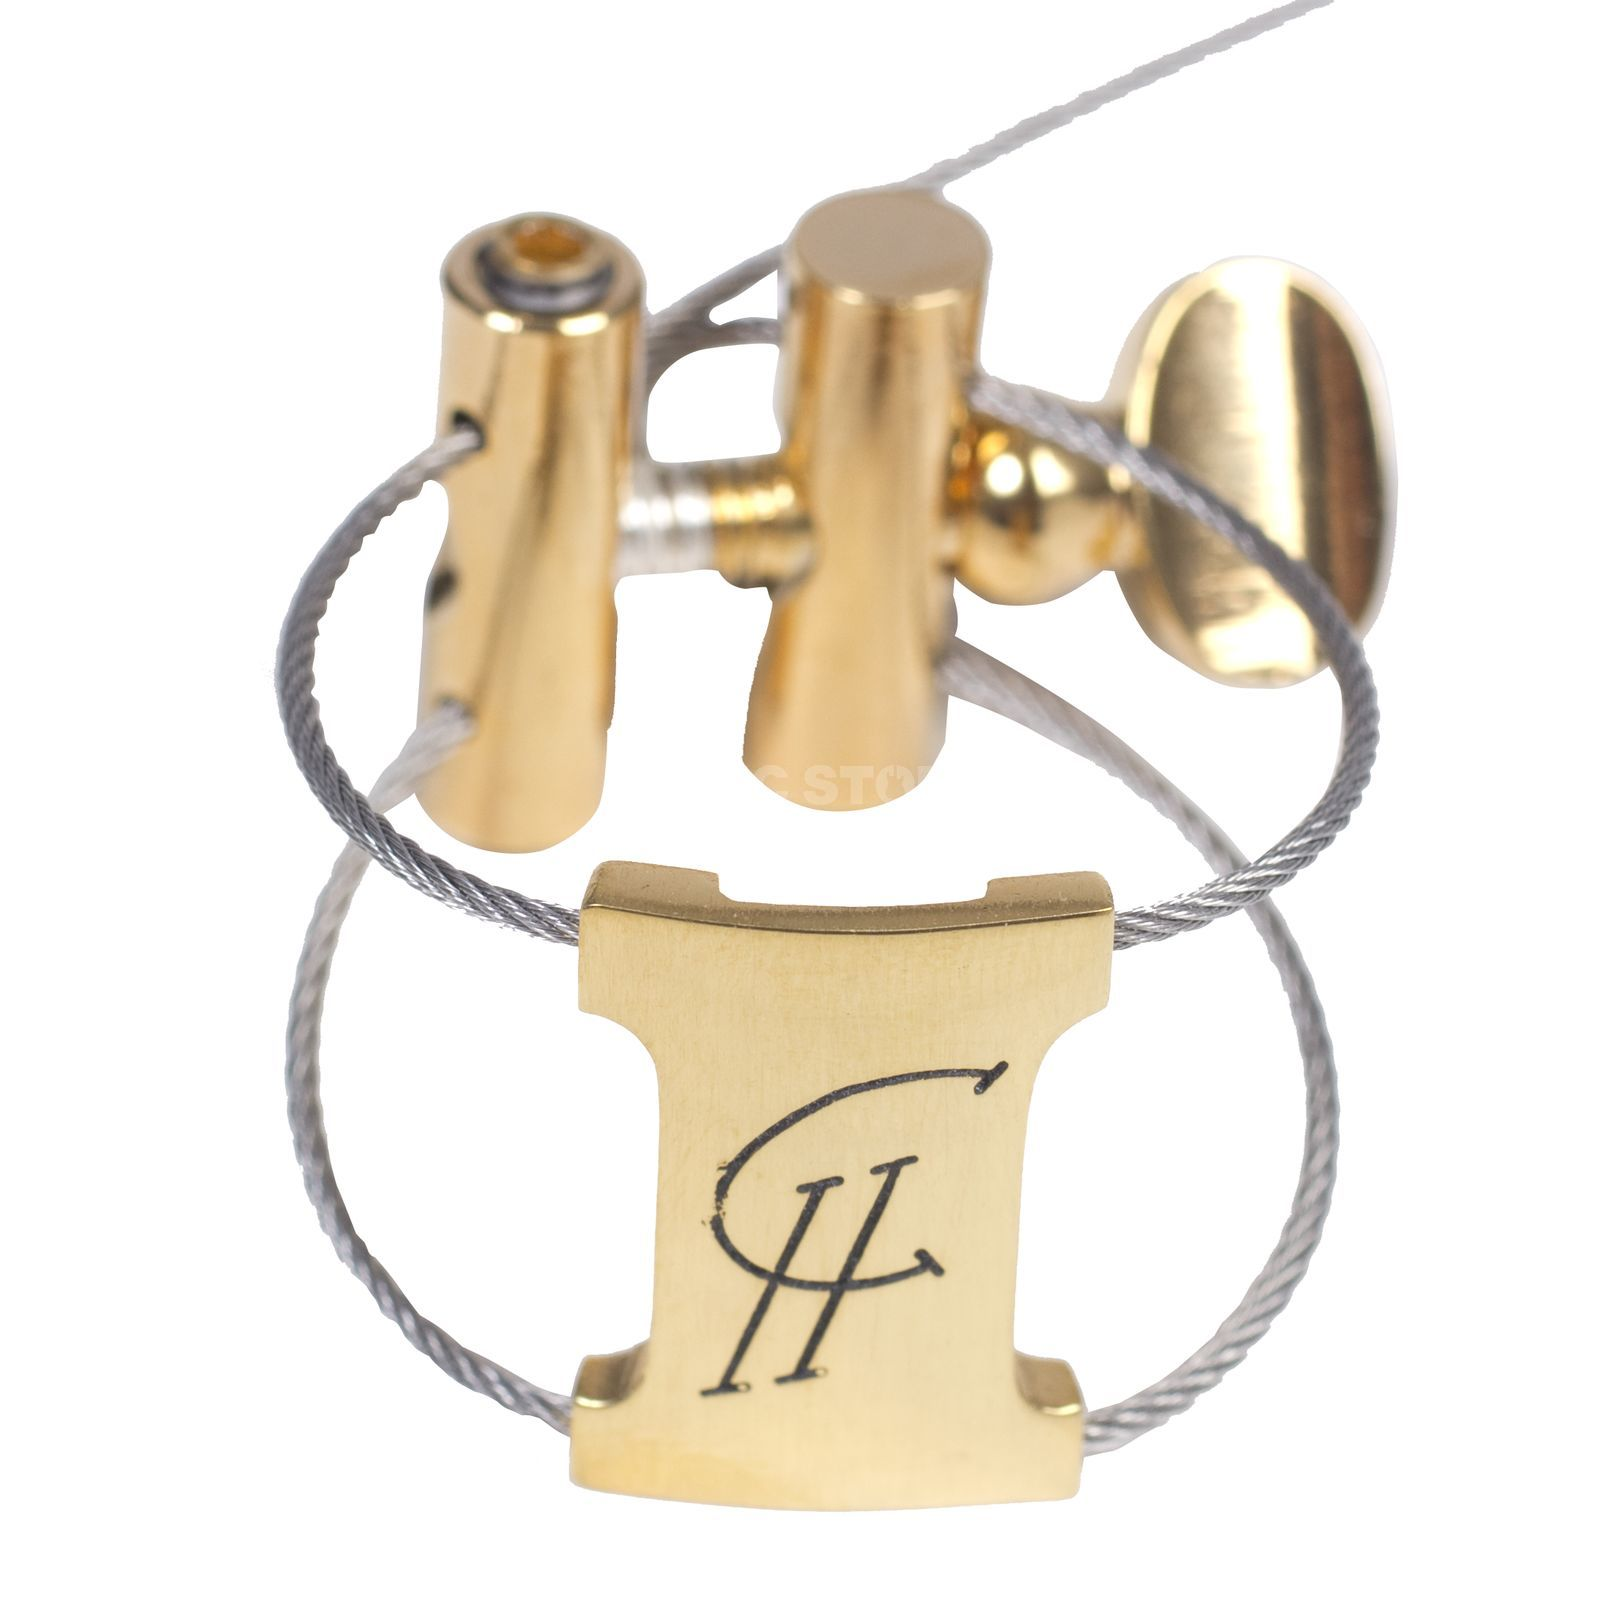 CH Sound Design Ligature Gold Product Image